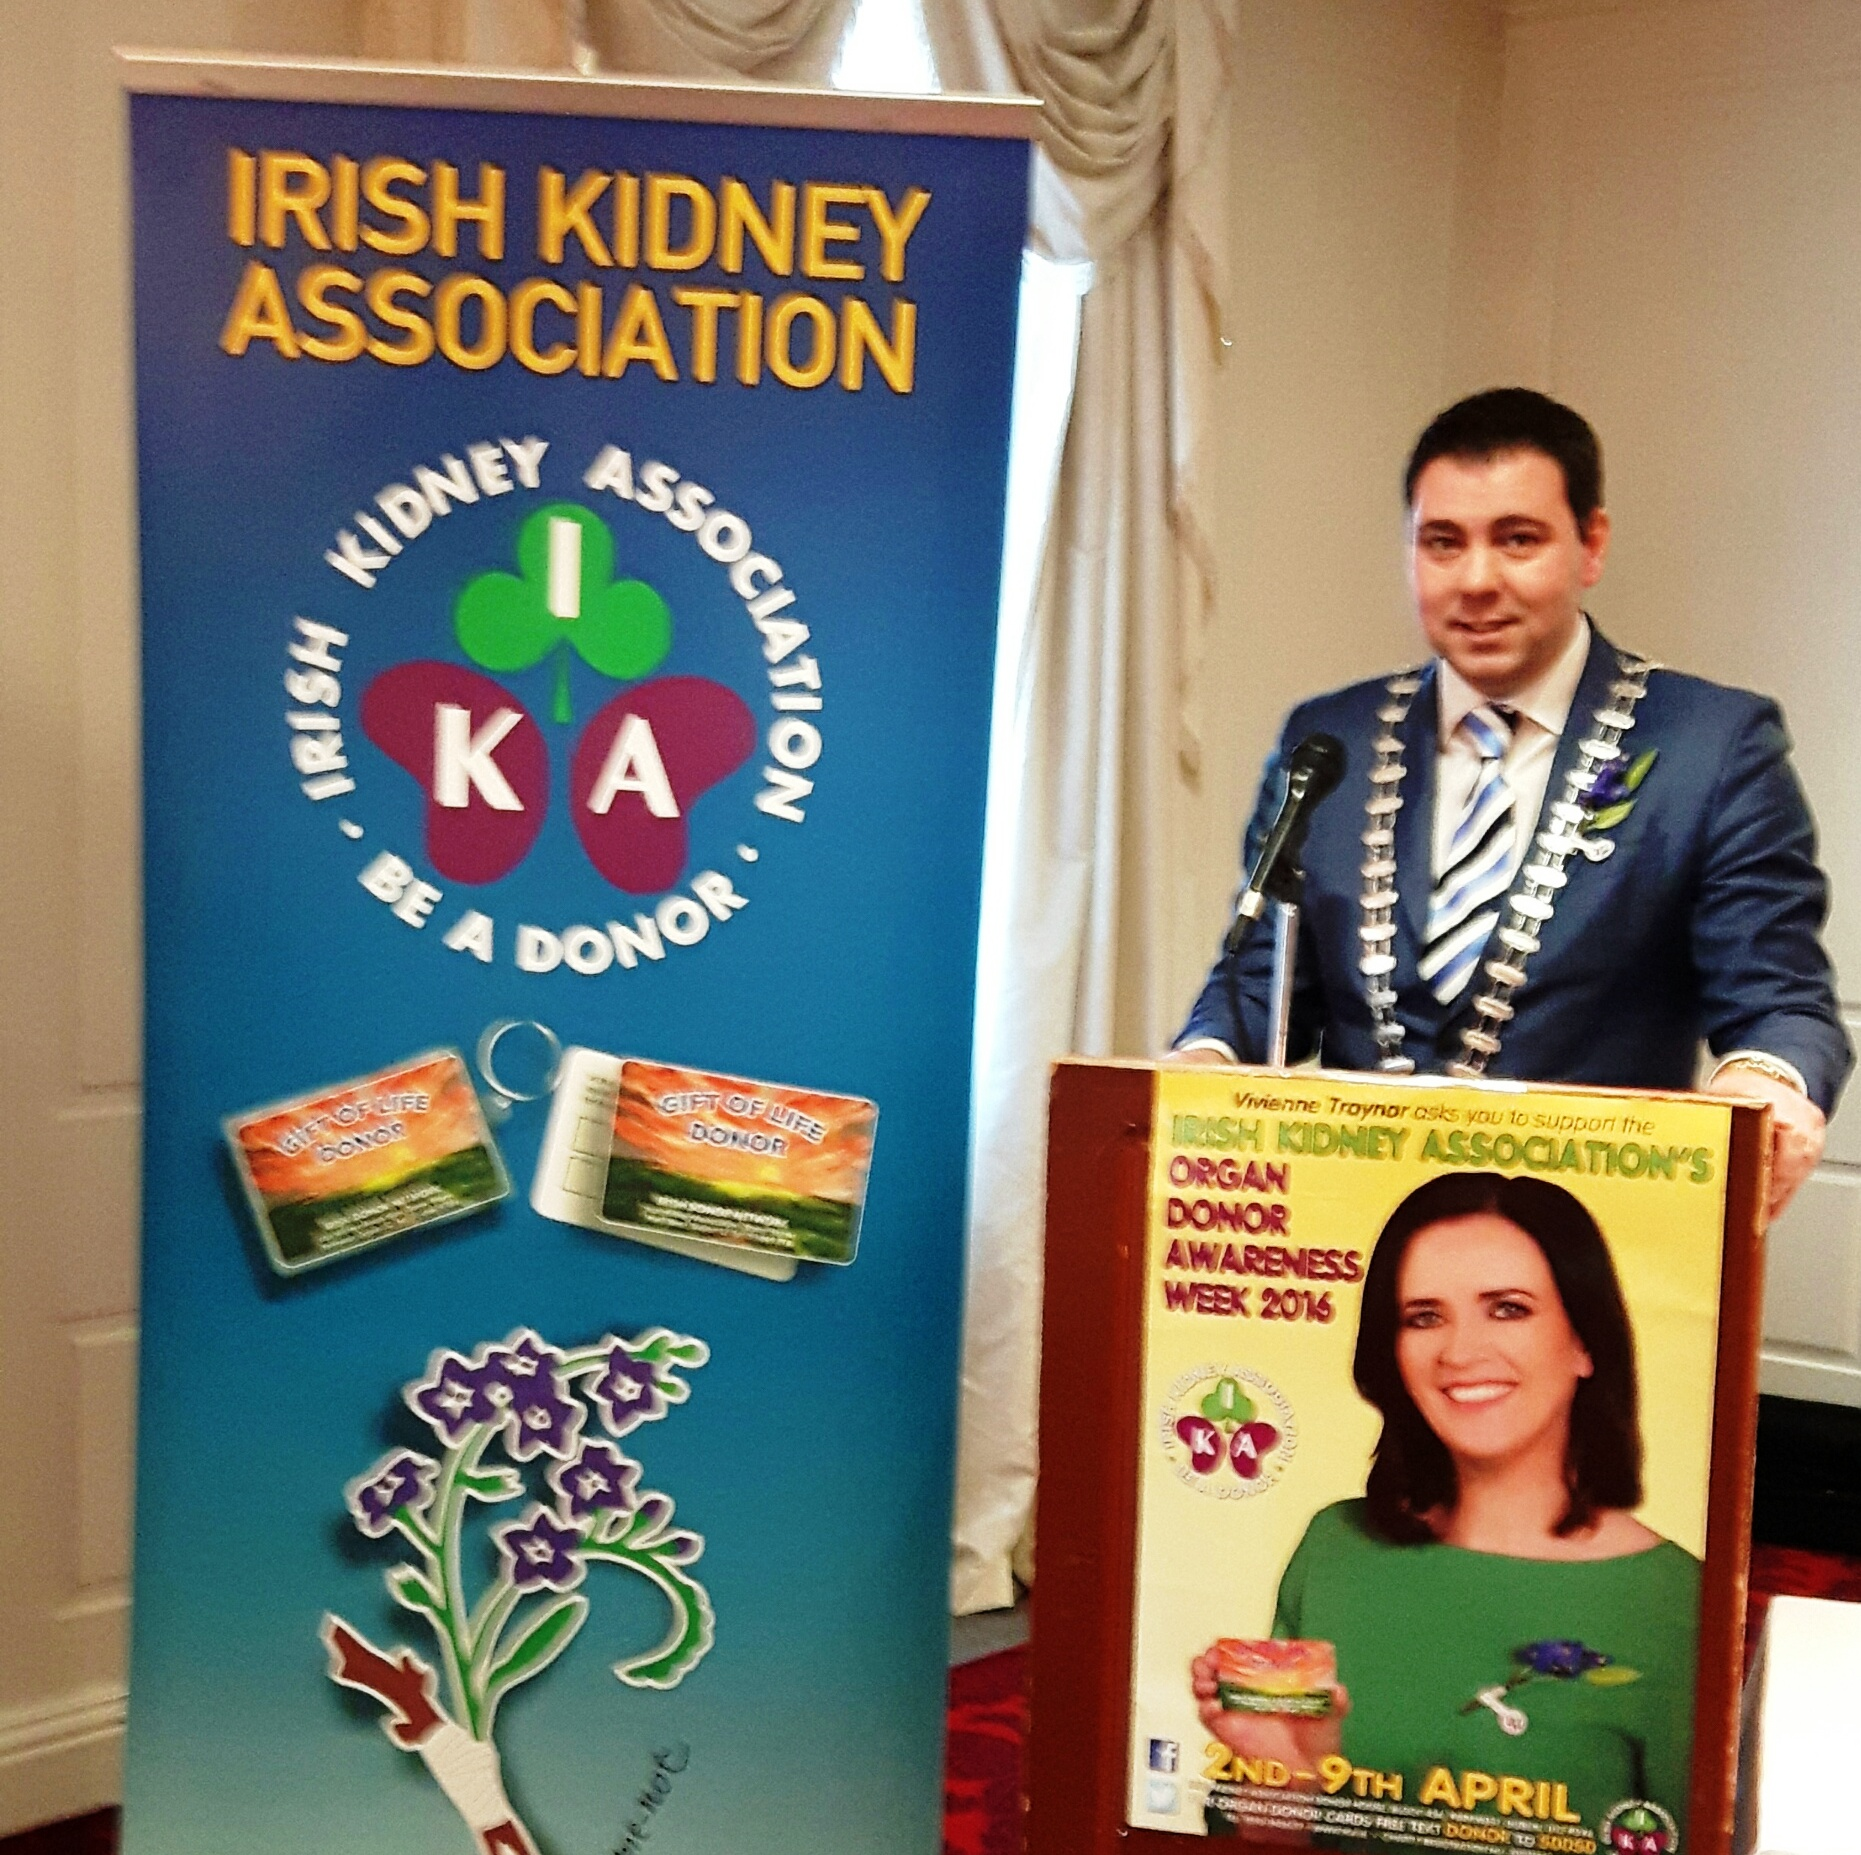 County Mayor Urges People of Cork To Support Organ Donation Awareness Week